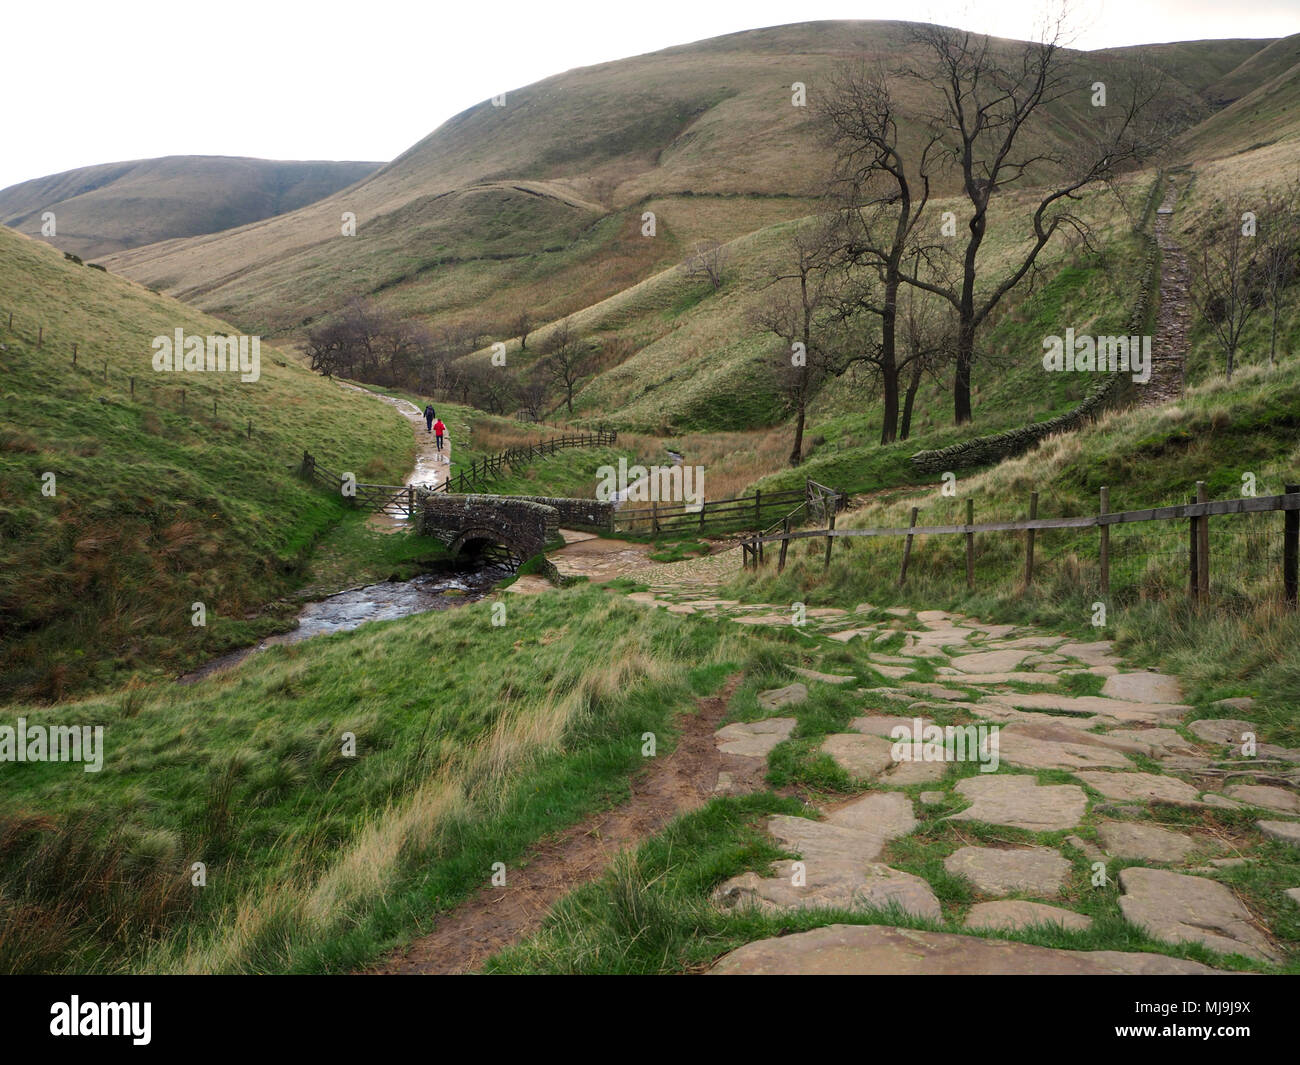 Jacobs Ladder footpath in Edale, Derbyshire,UK - Stock Image